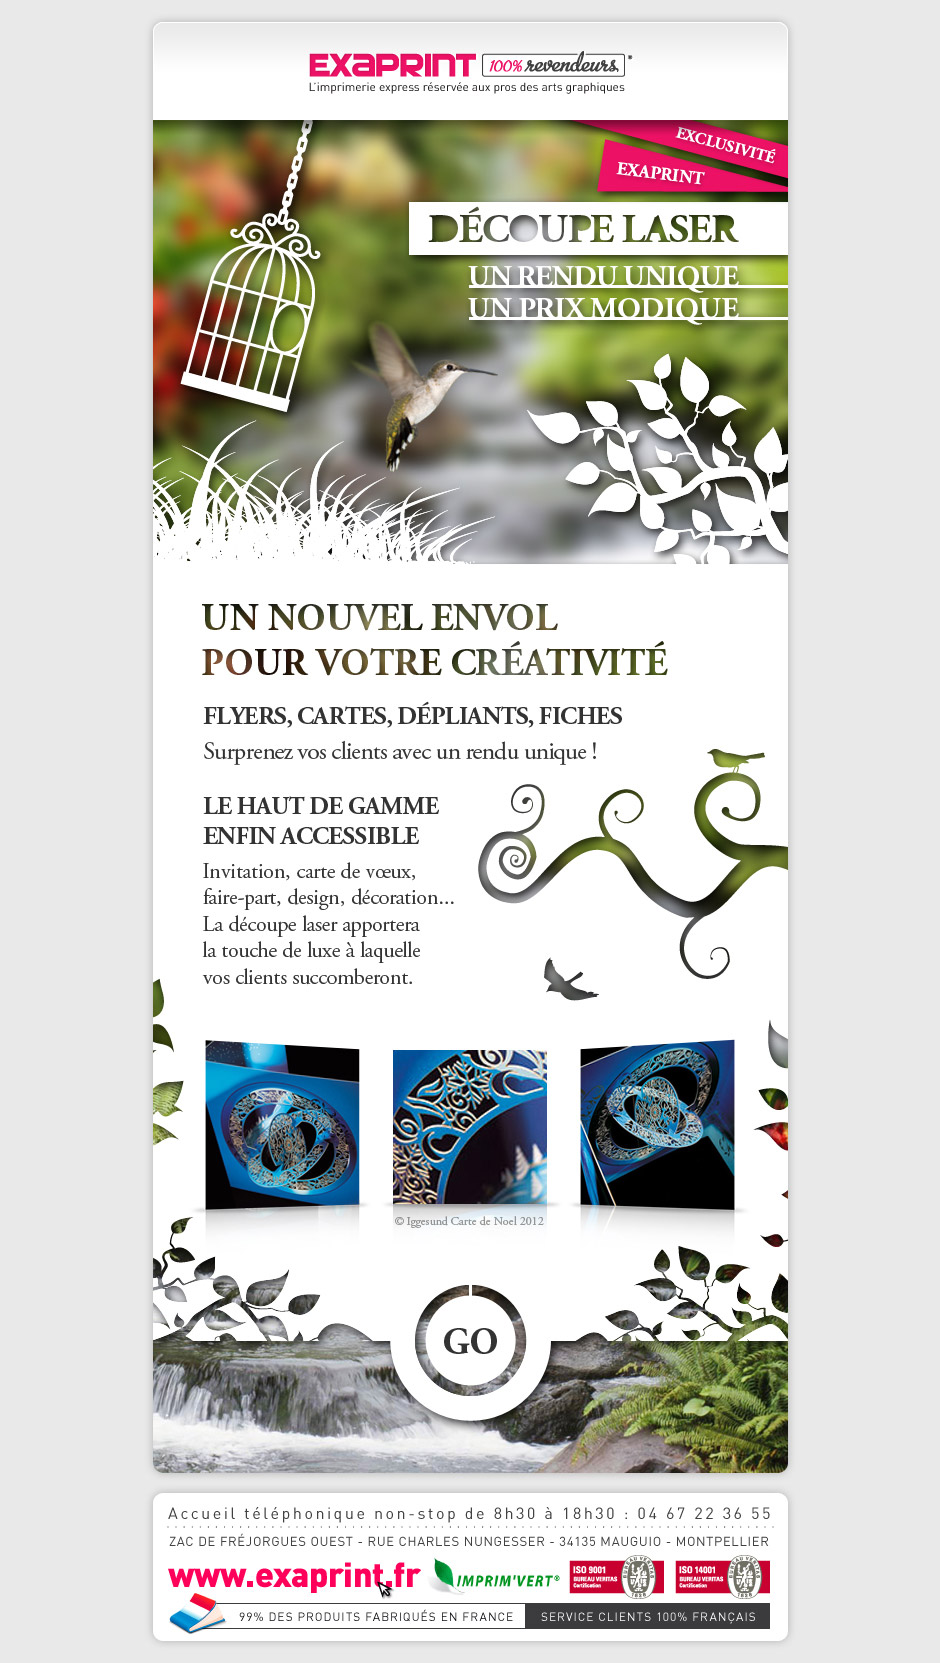 graphiste-montpellier-creation-exaprint-decoupe-laser-agence-communication-montpellier-caconcept-alexis-cretin-2